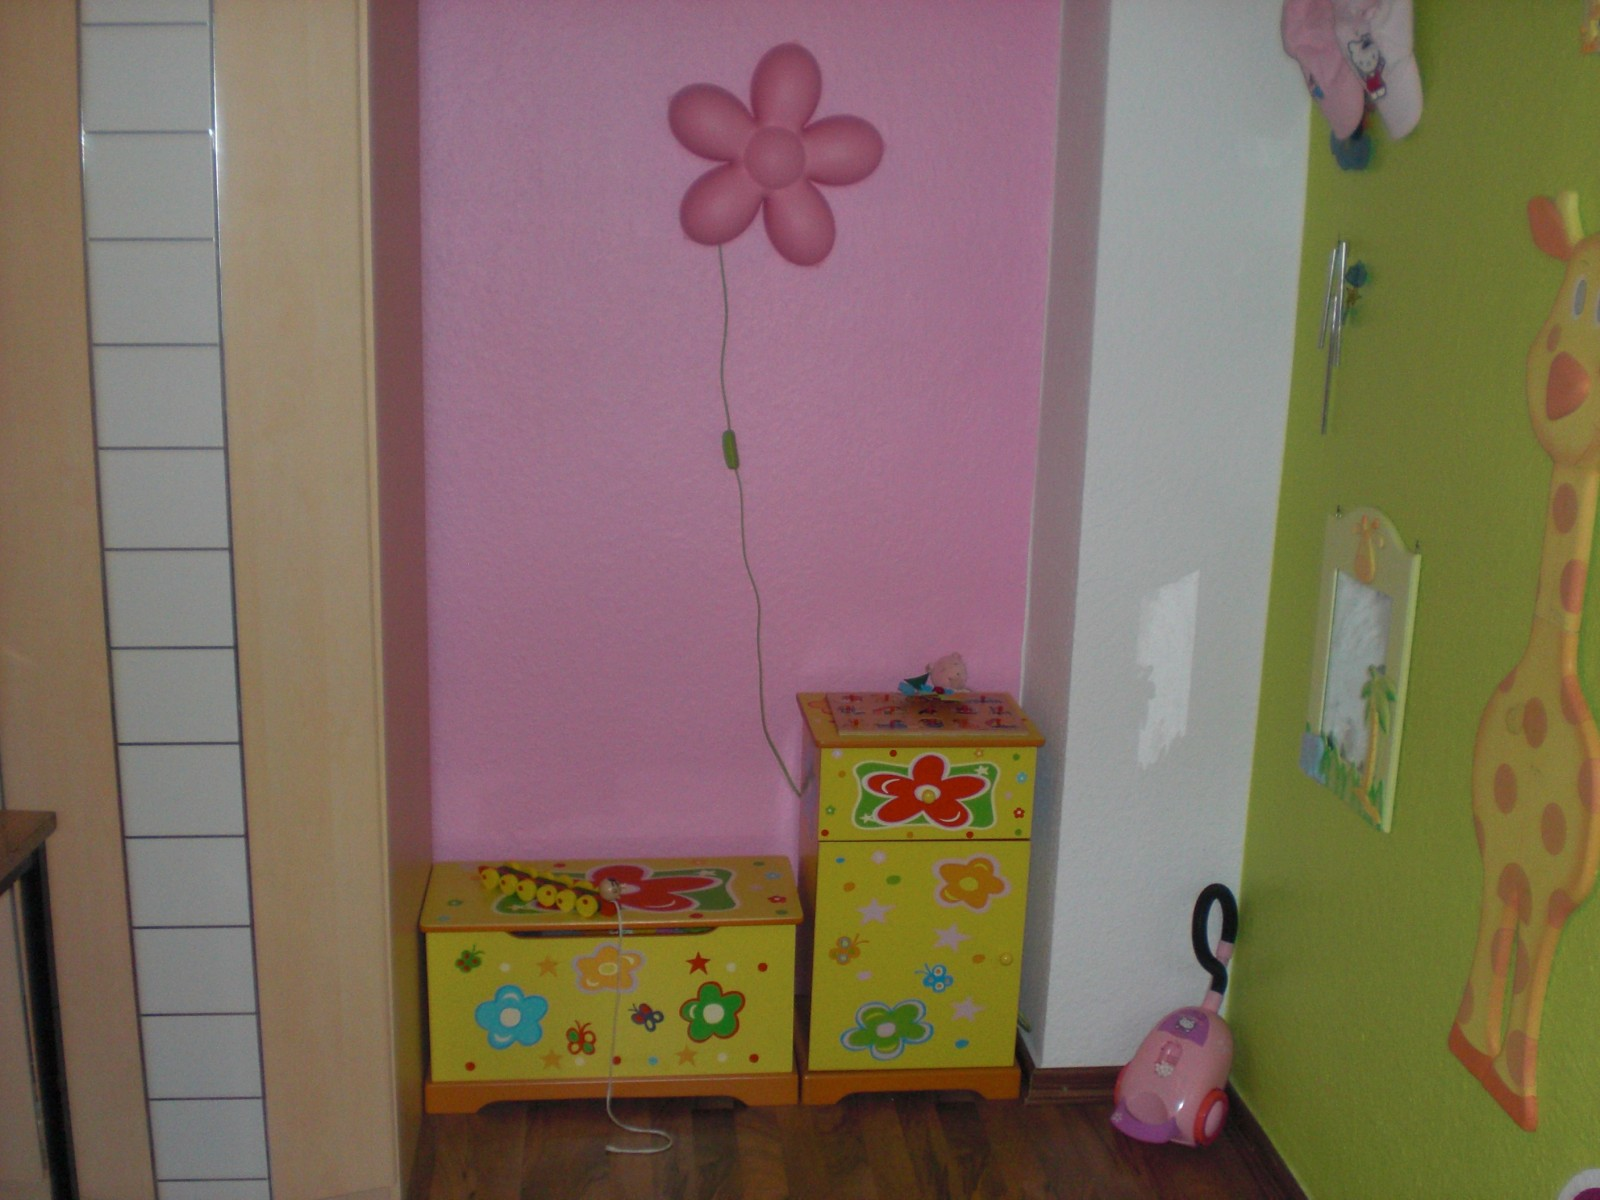 kinderzimmer 39 stacy alicia chayenne s rosa suite mit hello kitty 39 endllich platz f r alle. Black Bedroom Furniture Sets. Home Design Ideas